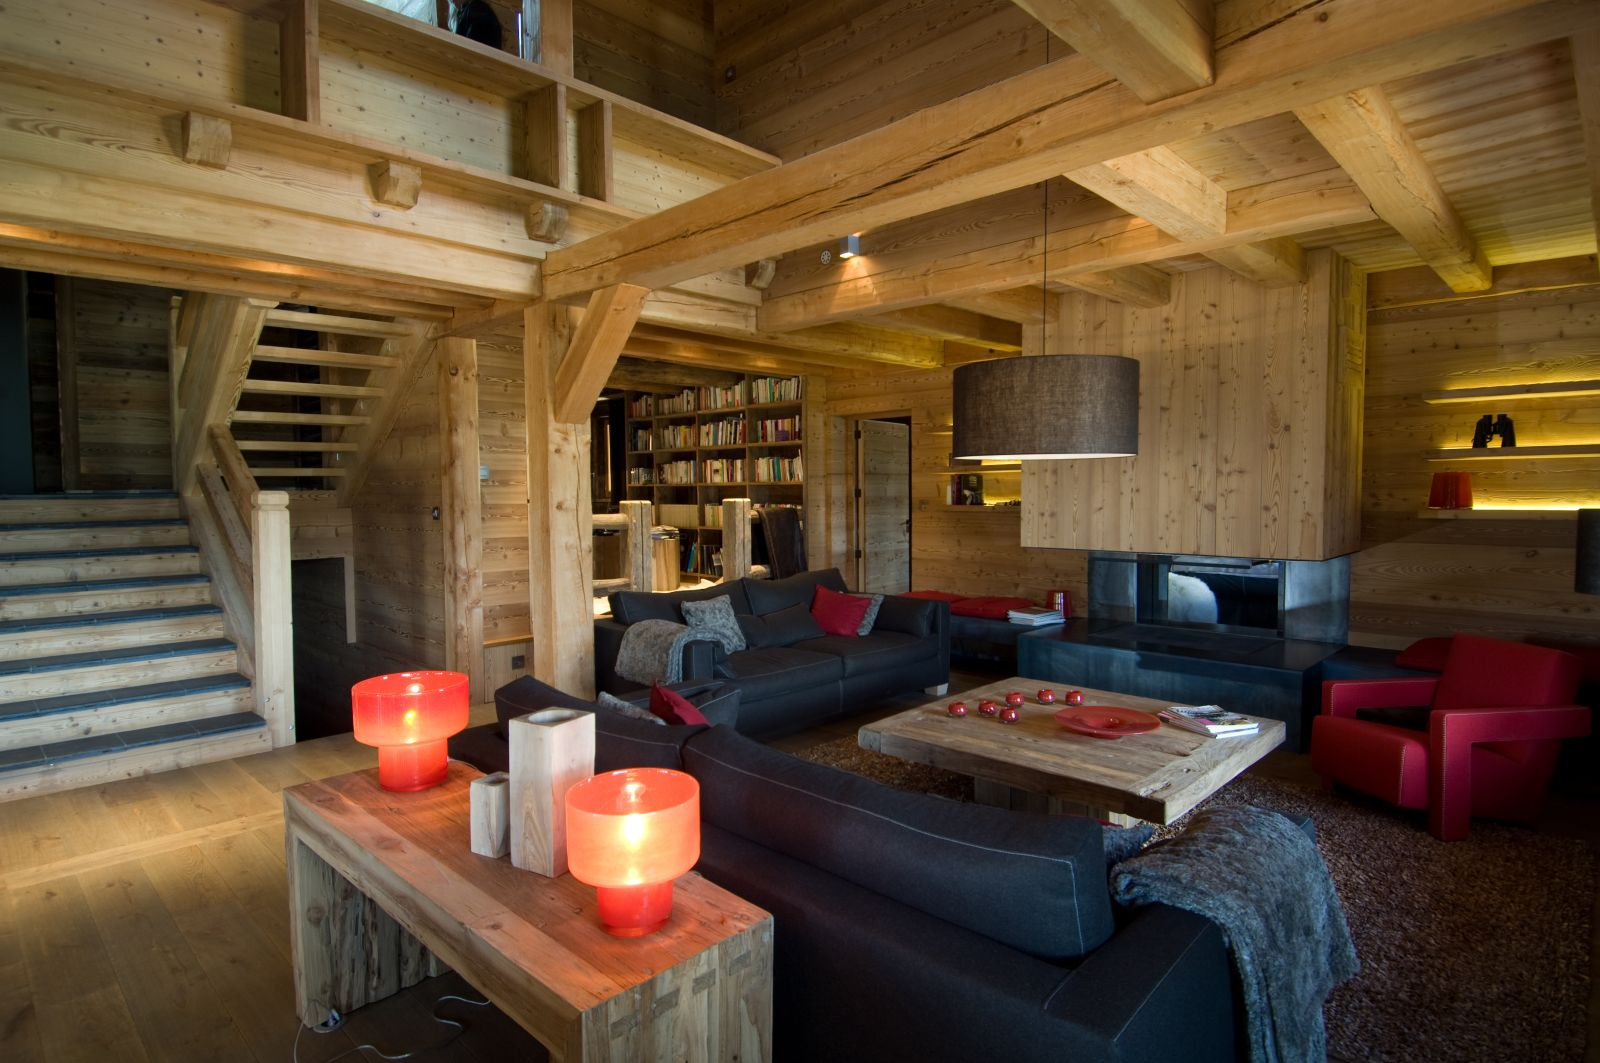 Location chalet luxe serre chevalier pied des pistes piscine interieure for Location luxe